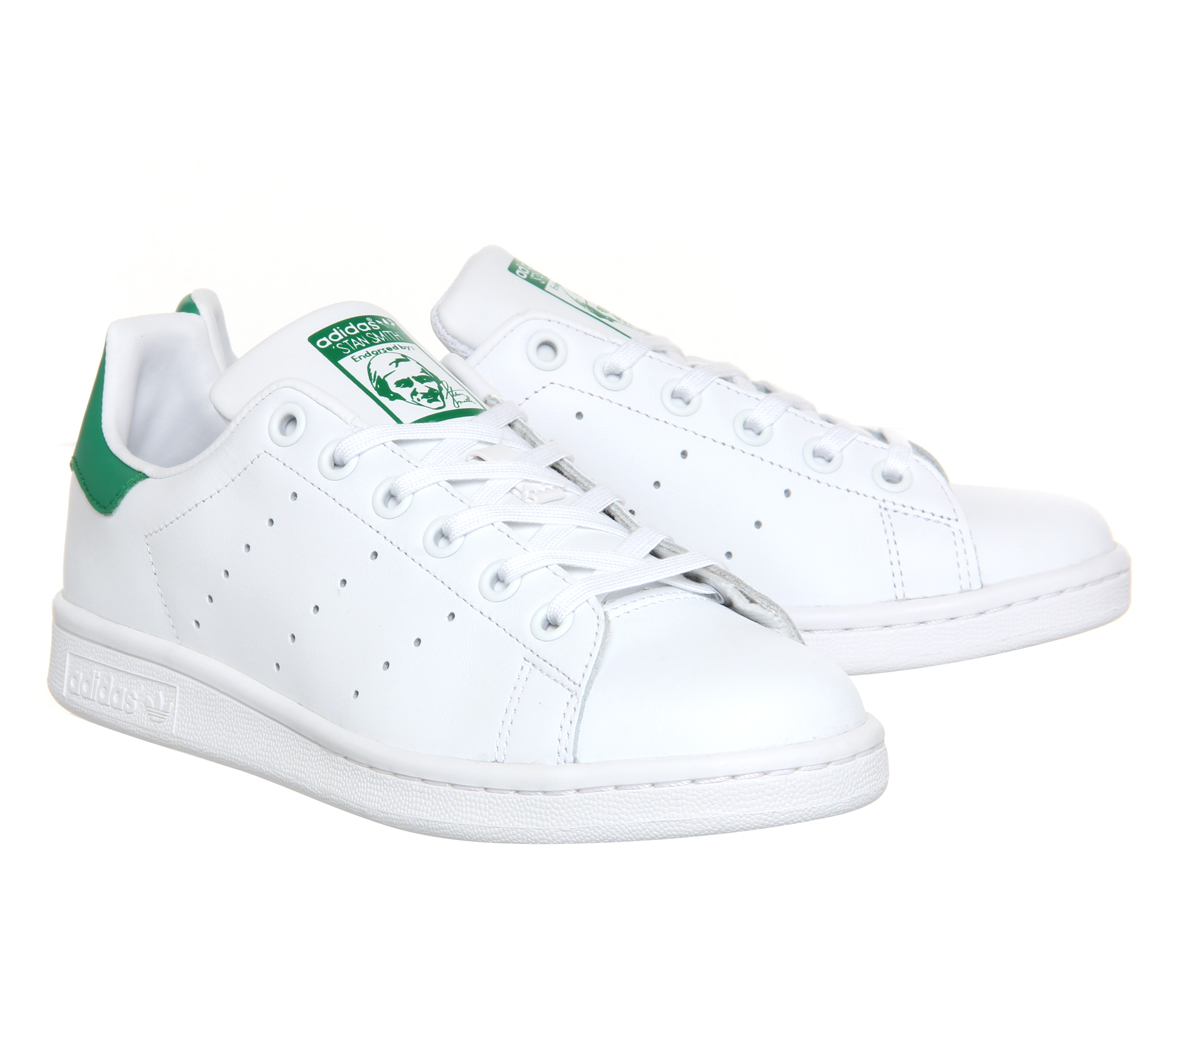 new arrivals 279fb 4254a Da-Uomo-Adidas-Stan-Smith-Trainer-Core-Scarpe-